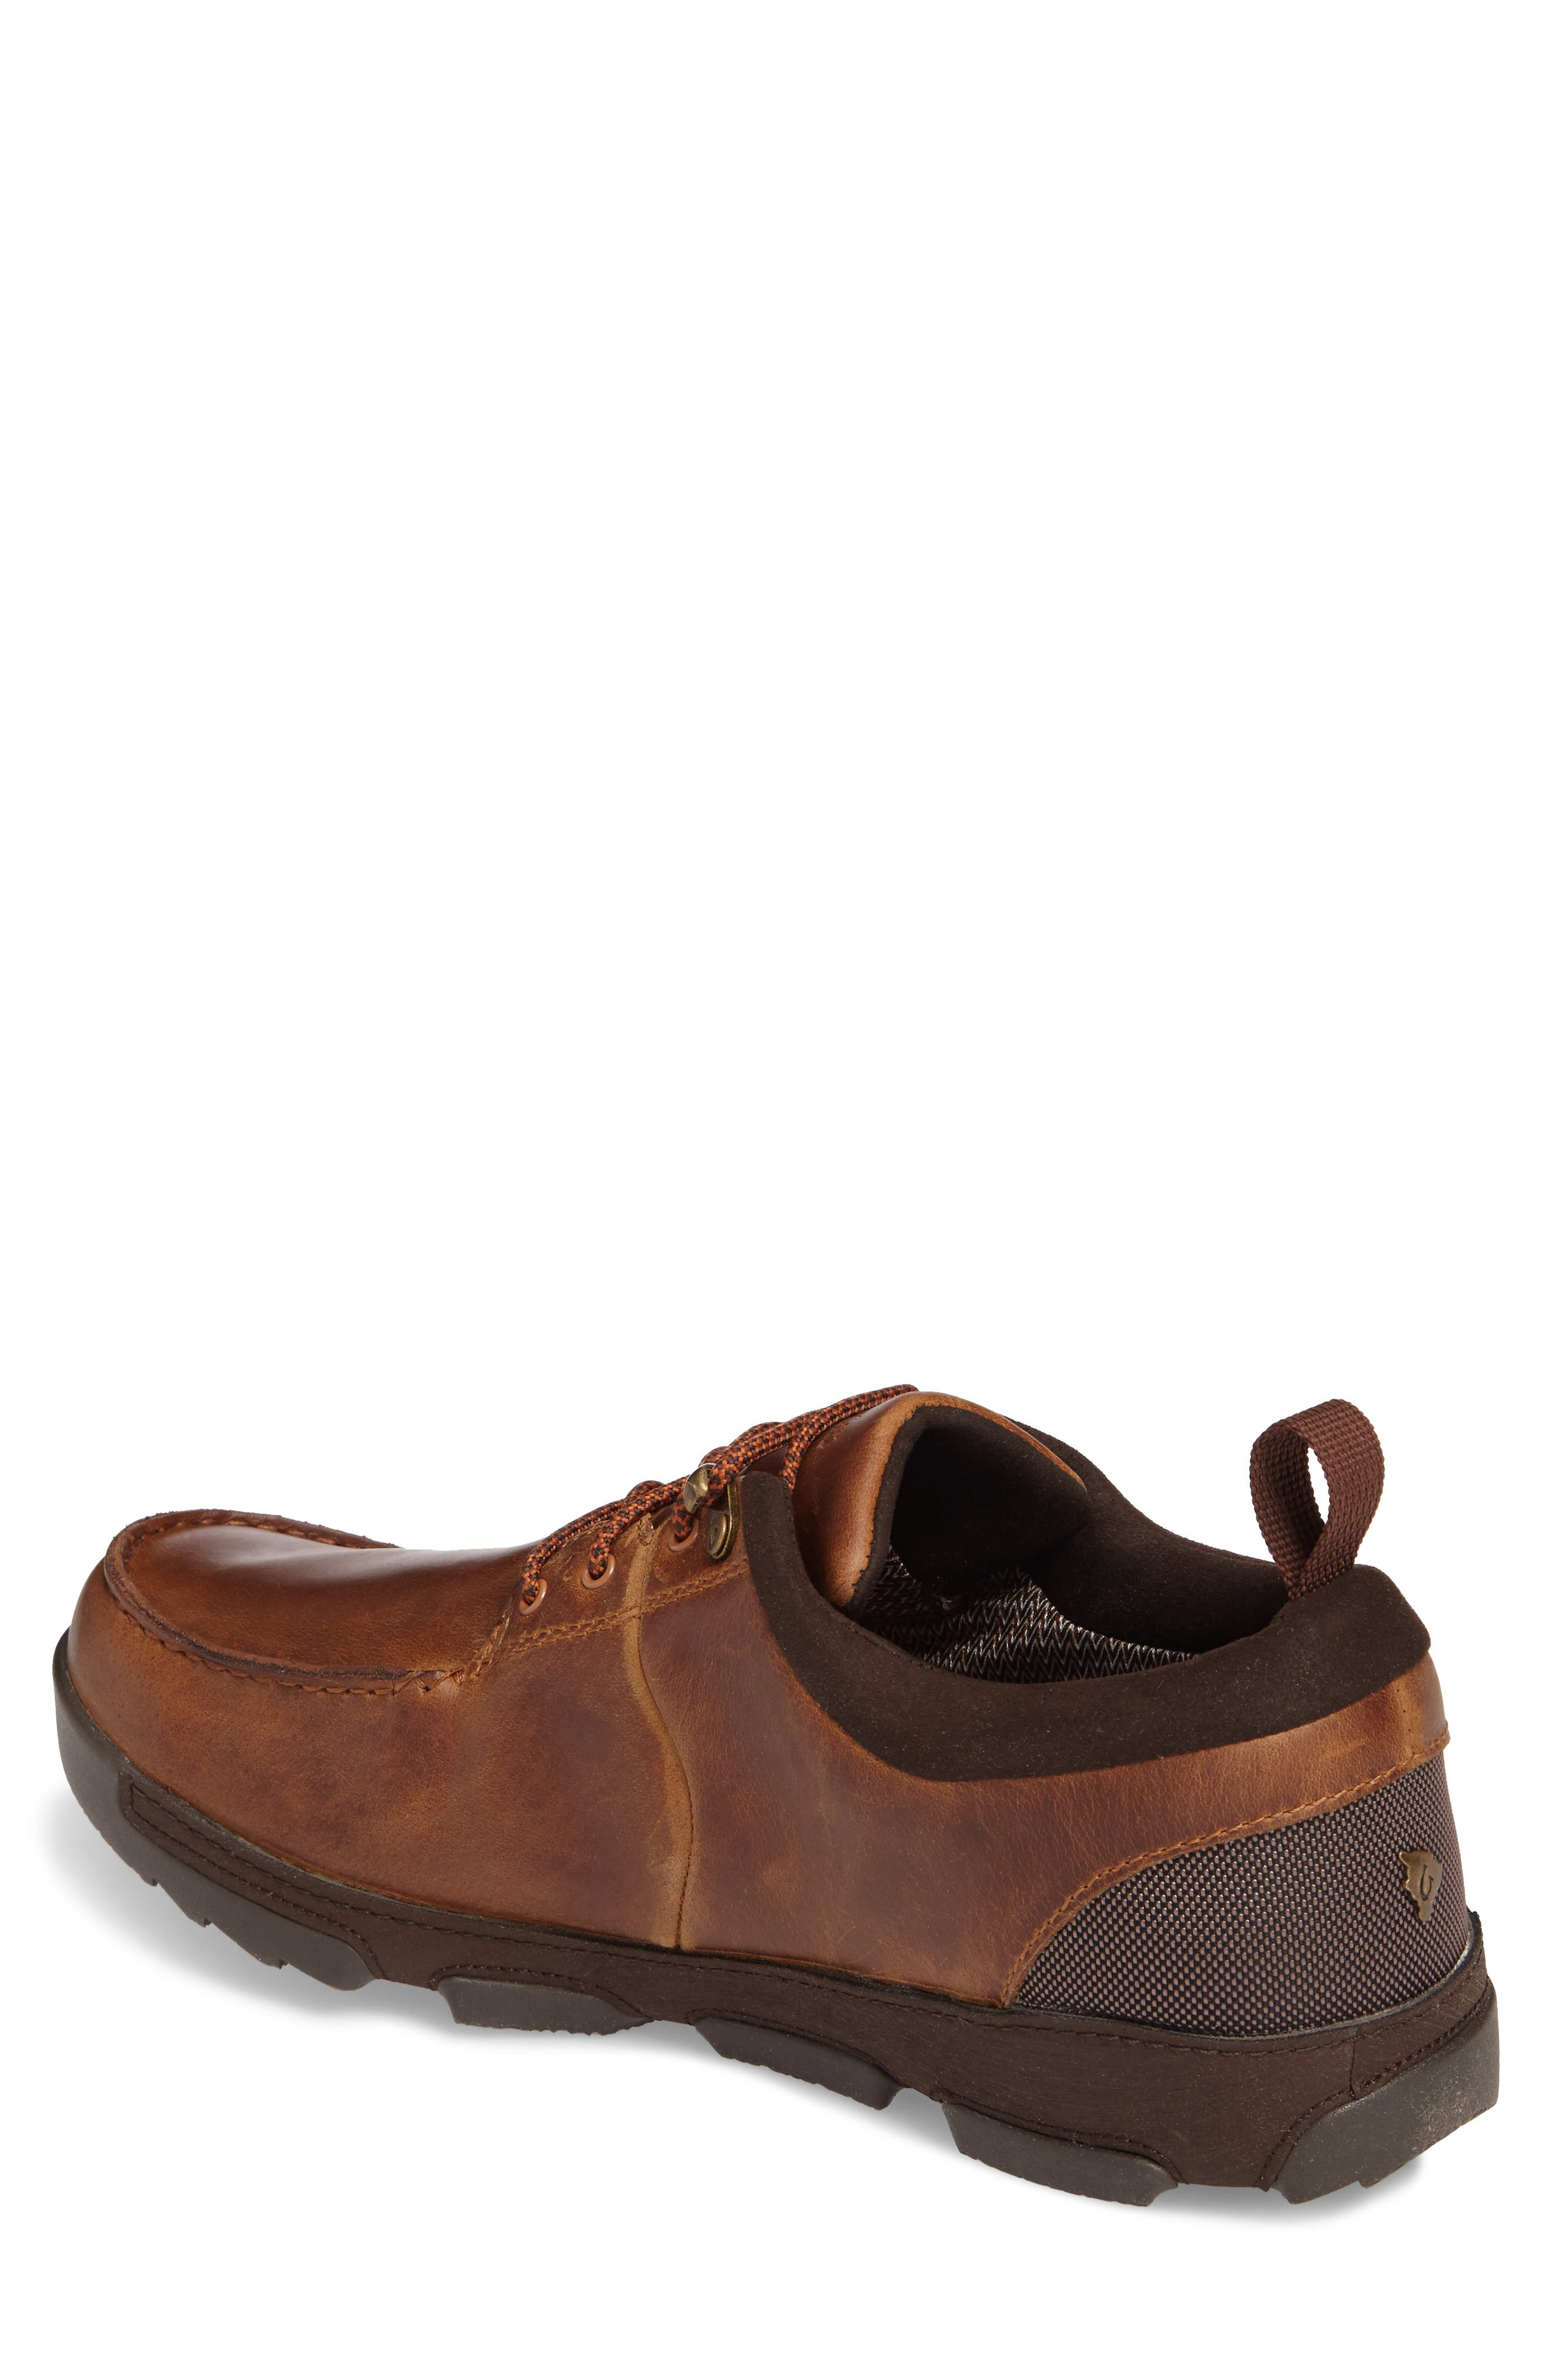 Makoa Waterproof Shoe,                             Alternate thumbnail 2, color,                             Fox/ Dark Wood Leather